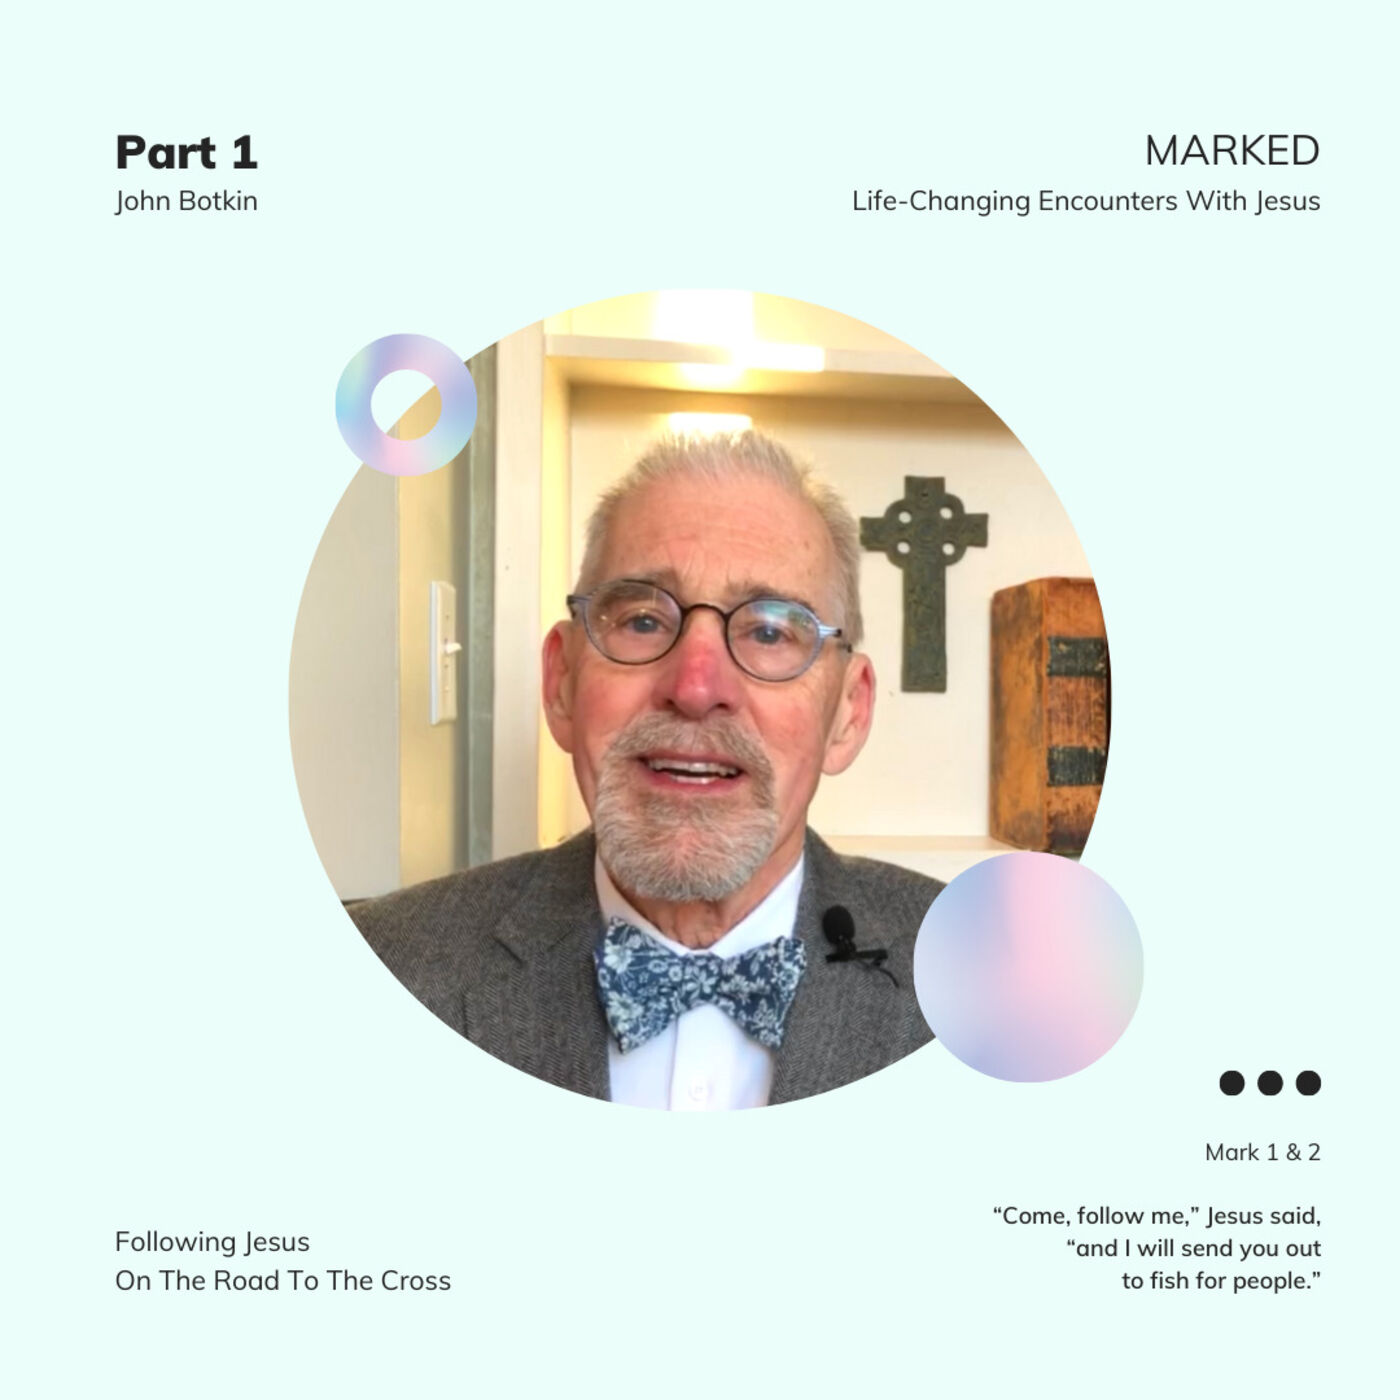 MARKED. Life Changing Encounters with Jesus - Mark 1 & 2 - John Botkin